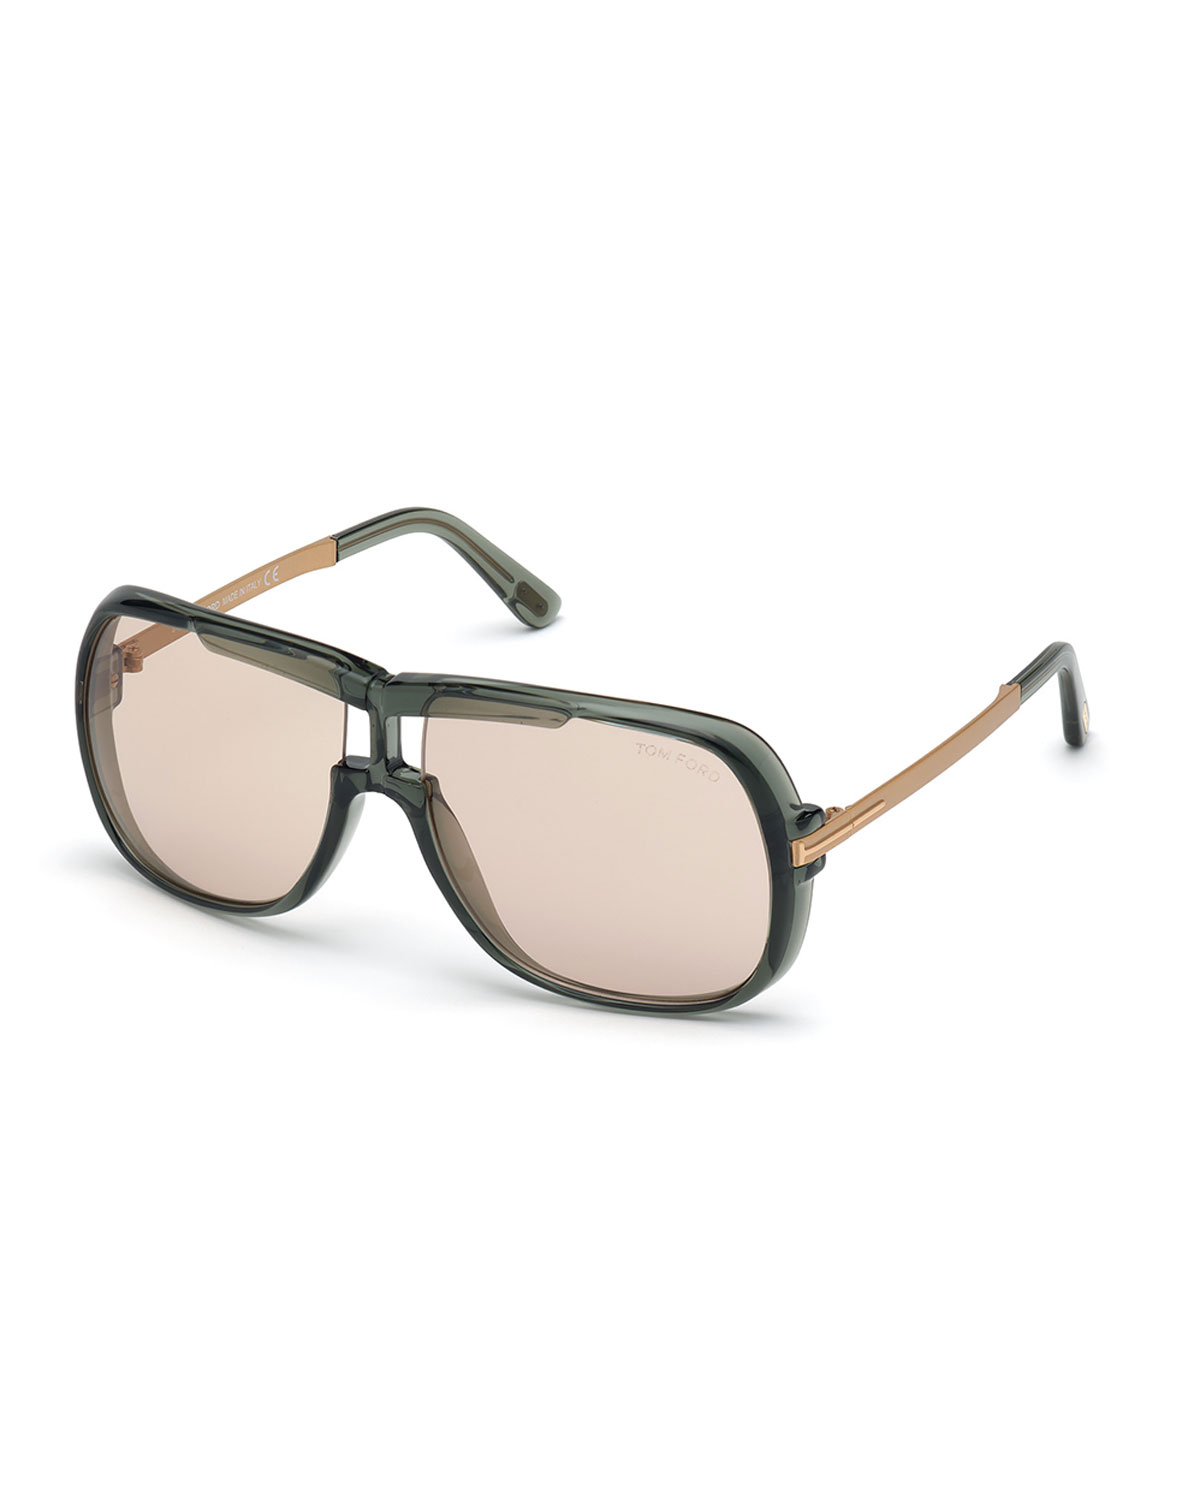 Tom Ford Sunglasses Caine Acetate Square Sunglasses